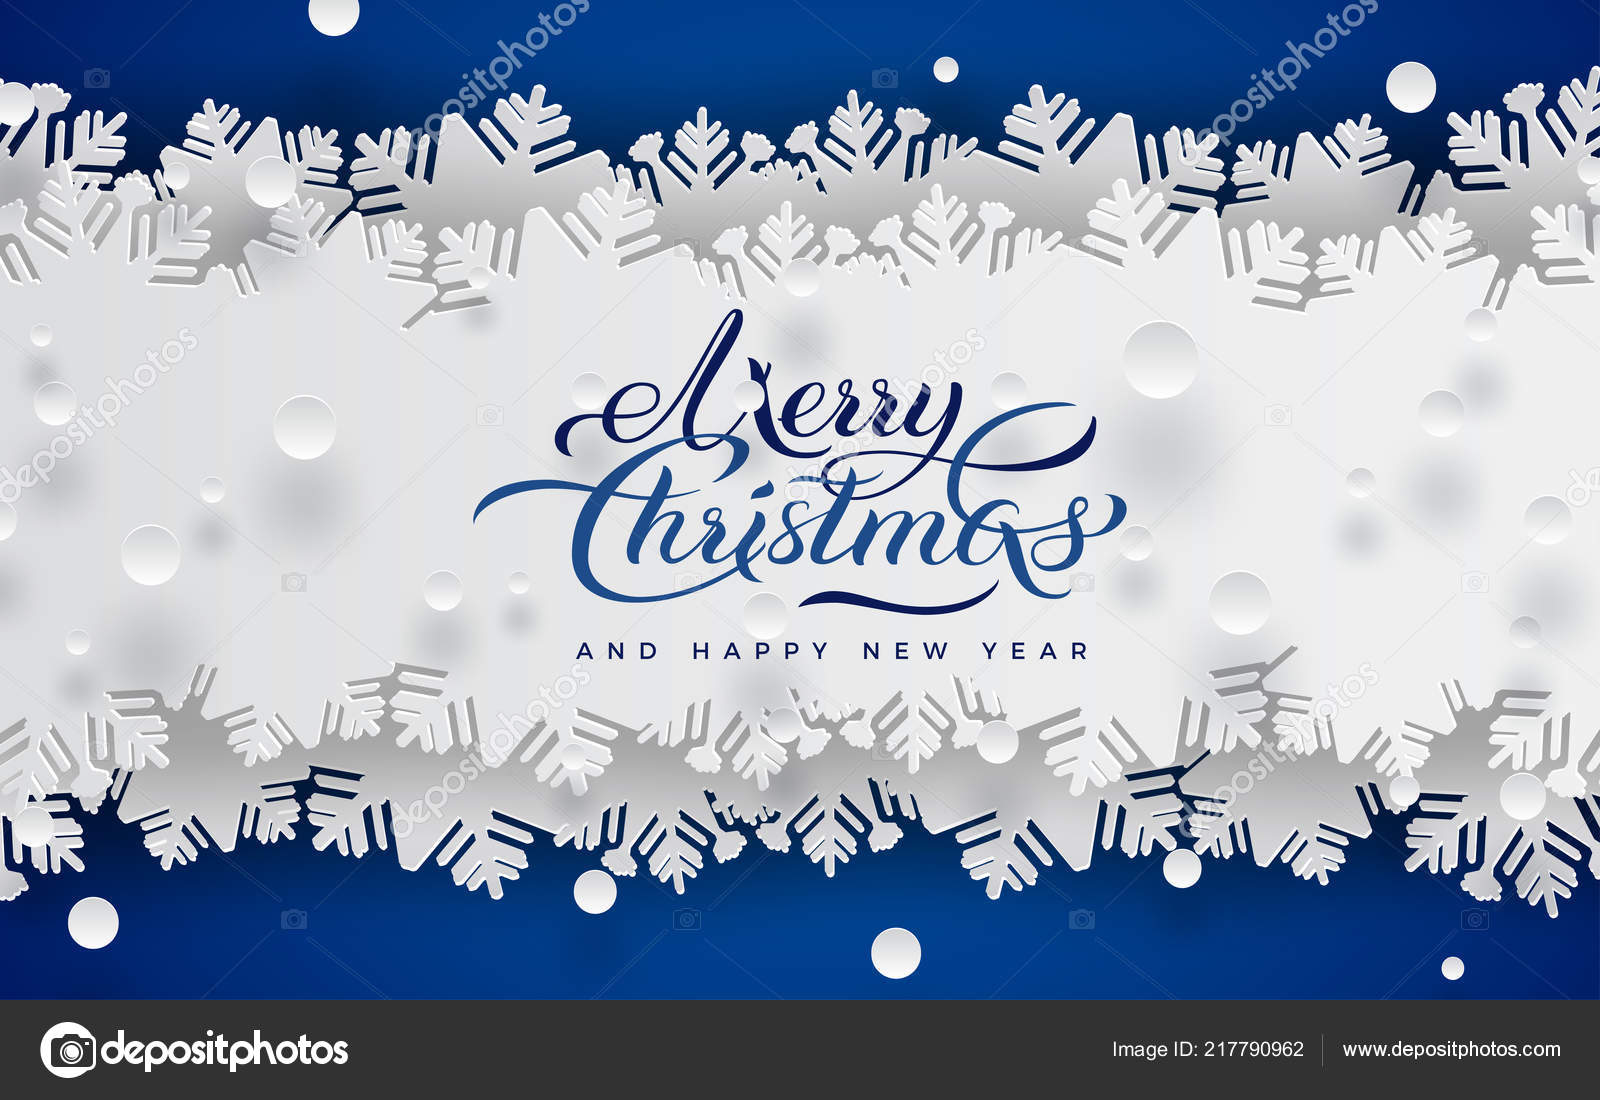 Download Merry Christmas Happy New Year Banner